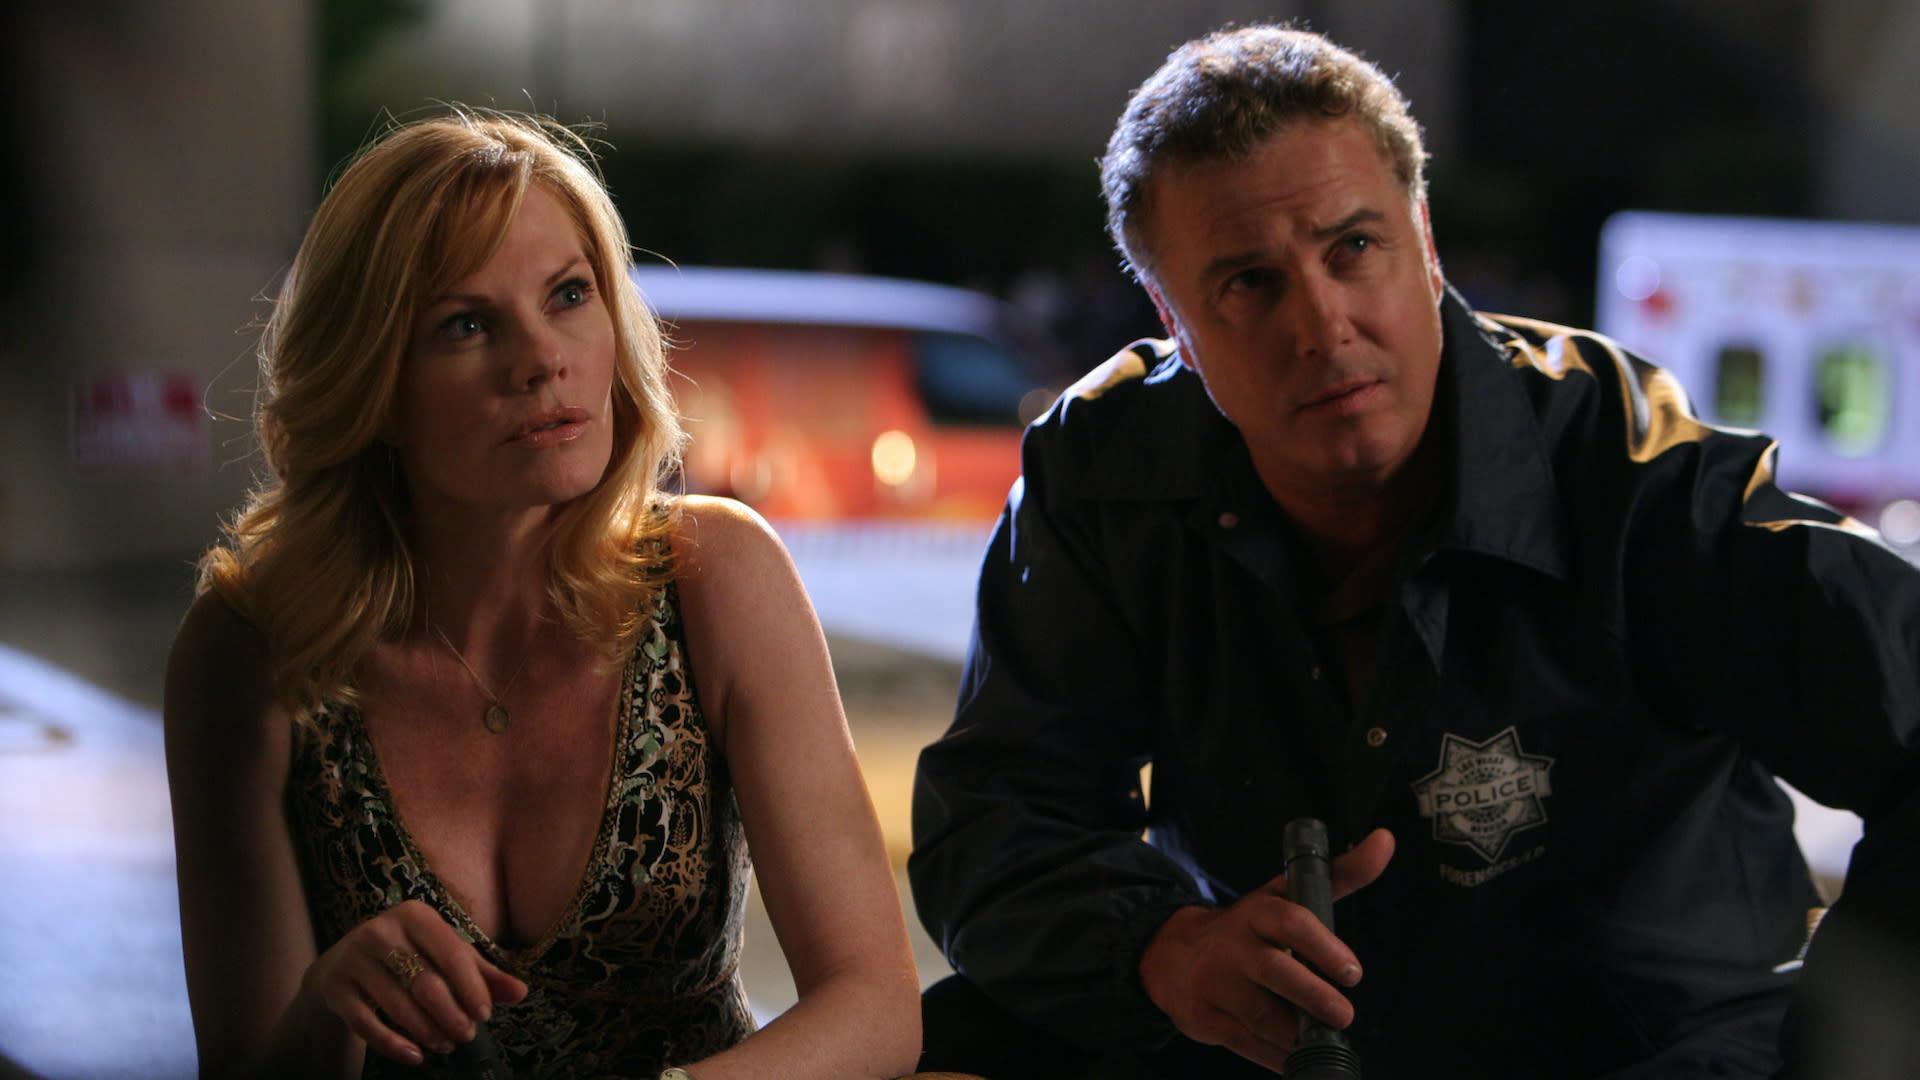 """Built to Kill, Part 1"" -- Grissom (William Petersen) and Catherine (Marg Helgenberger) investigate the murder of an aspiring dancer killed backstage at Cirque du Soleil, on part one of the two part seventh season premiere of CSI: CRIME SCENE INVESTIGATION, Thursday September 17 (9:00-10:00 PM, ET/PT) on the CBS Television Network. Photo: Robert Voets/CBS ©2006 CBS Broadcasting Inc. All Rights Reserved."